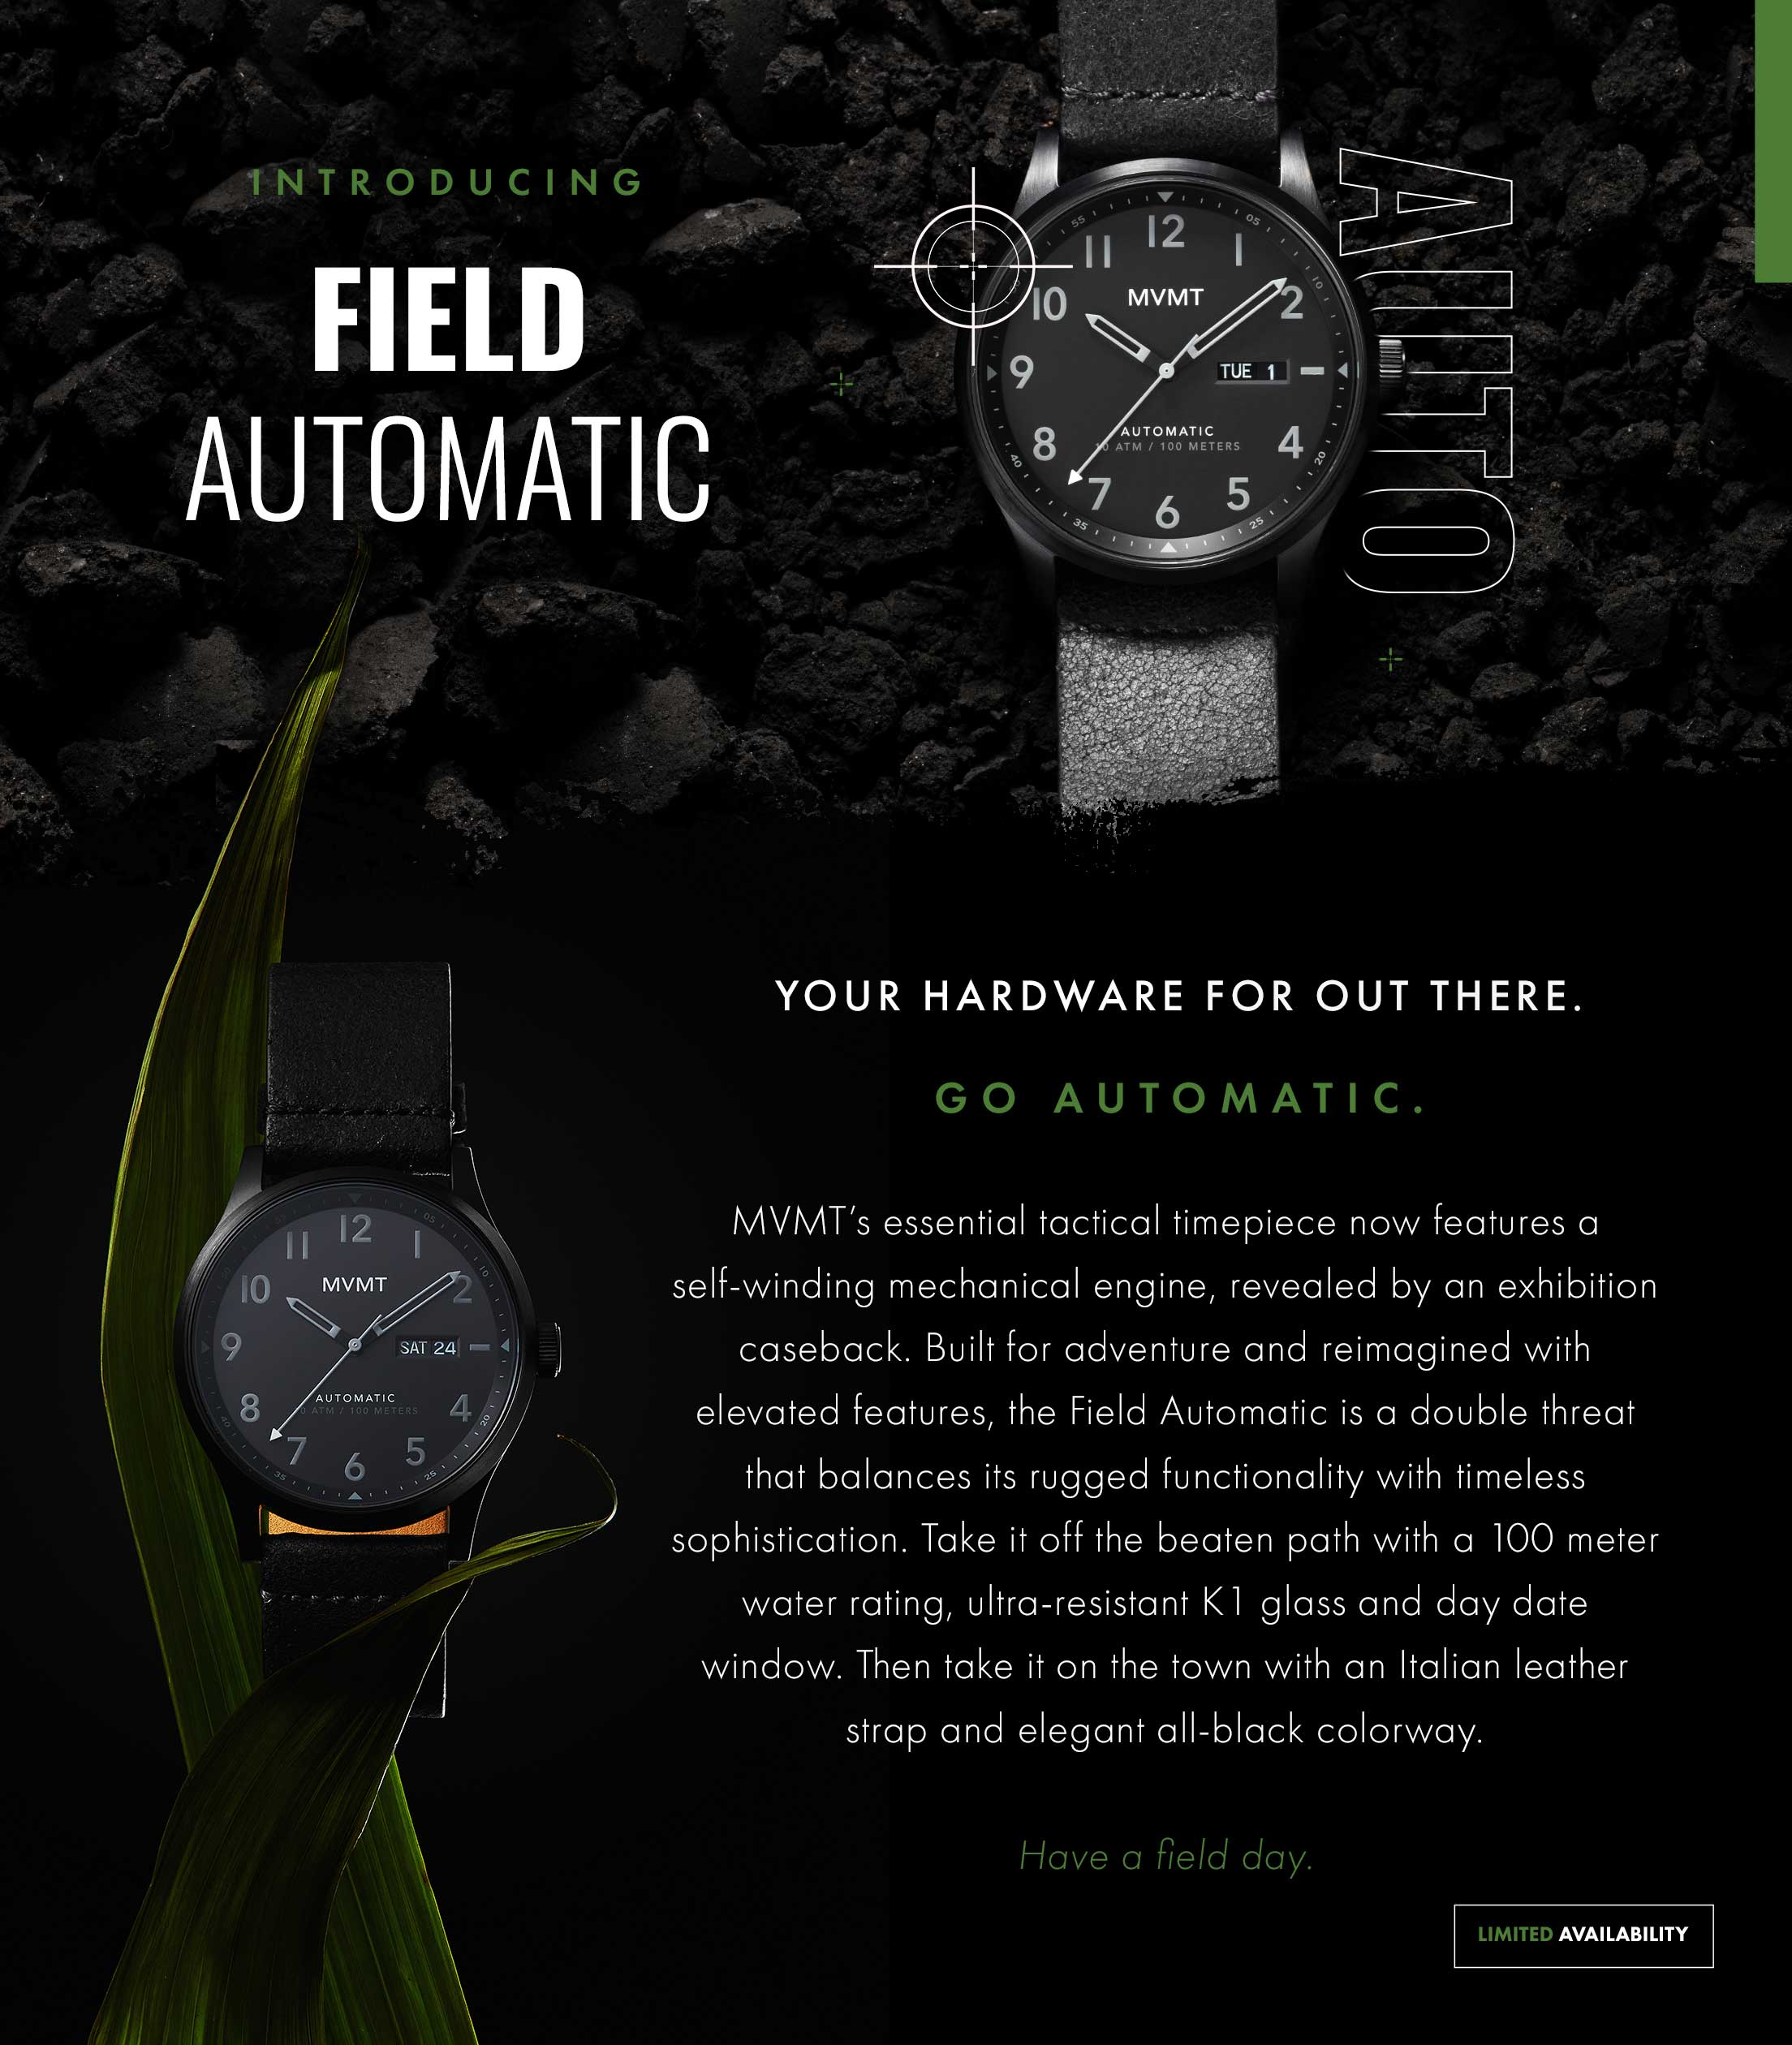 Introducing the Field Automatic